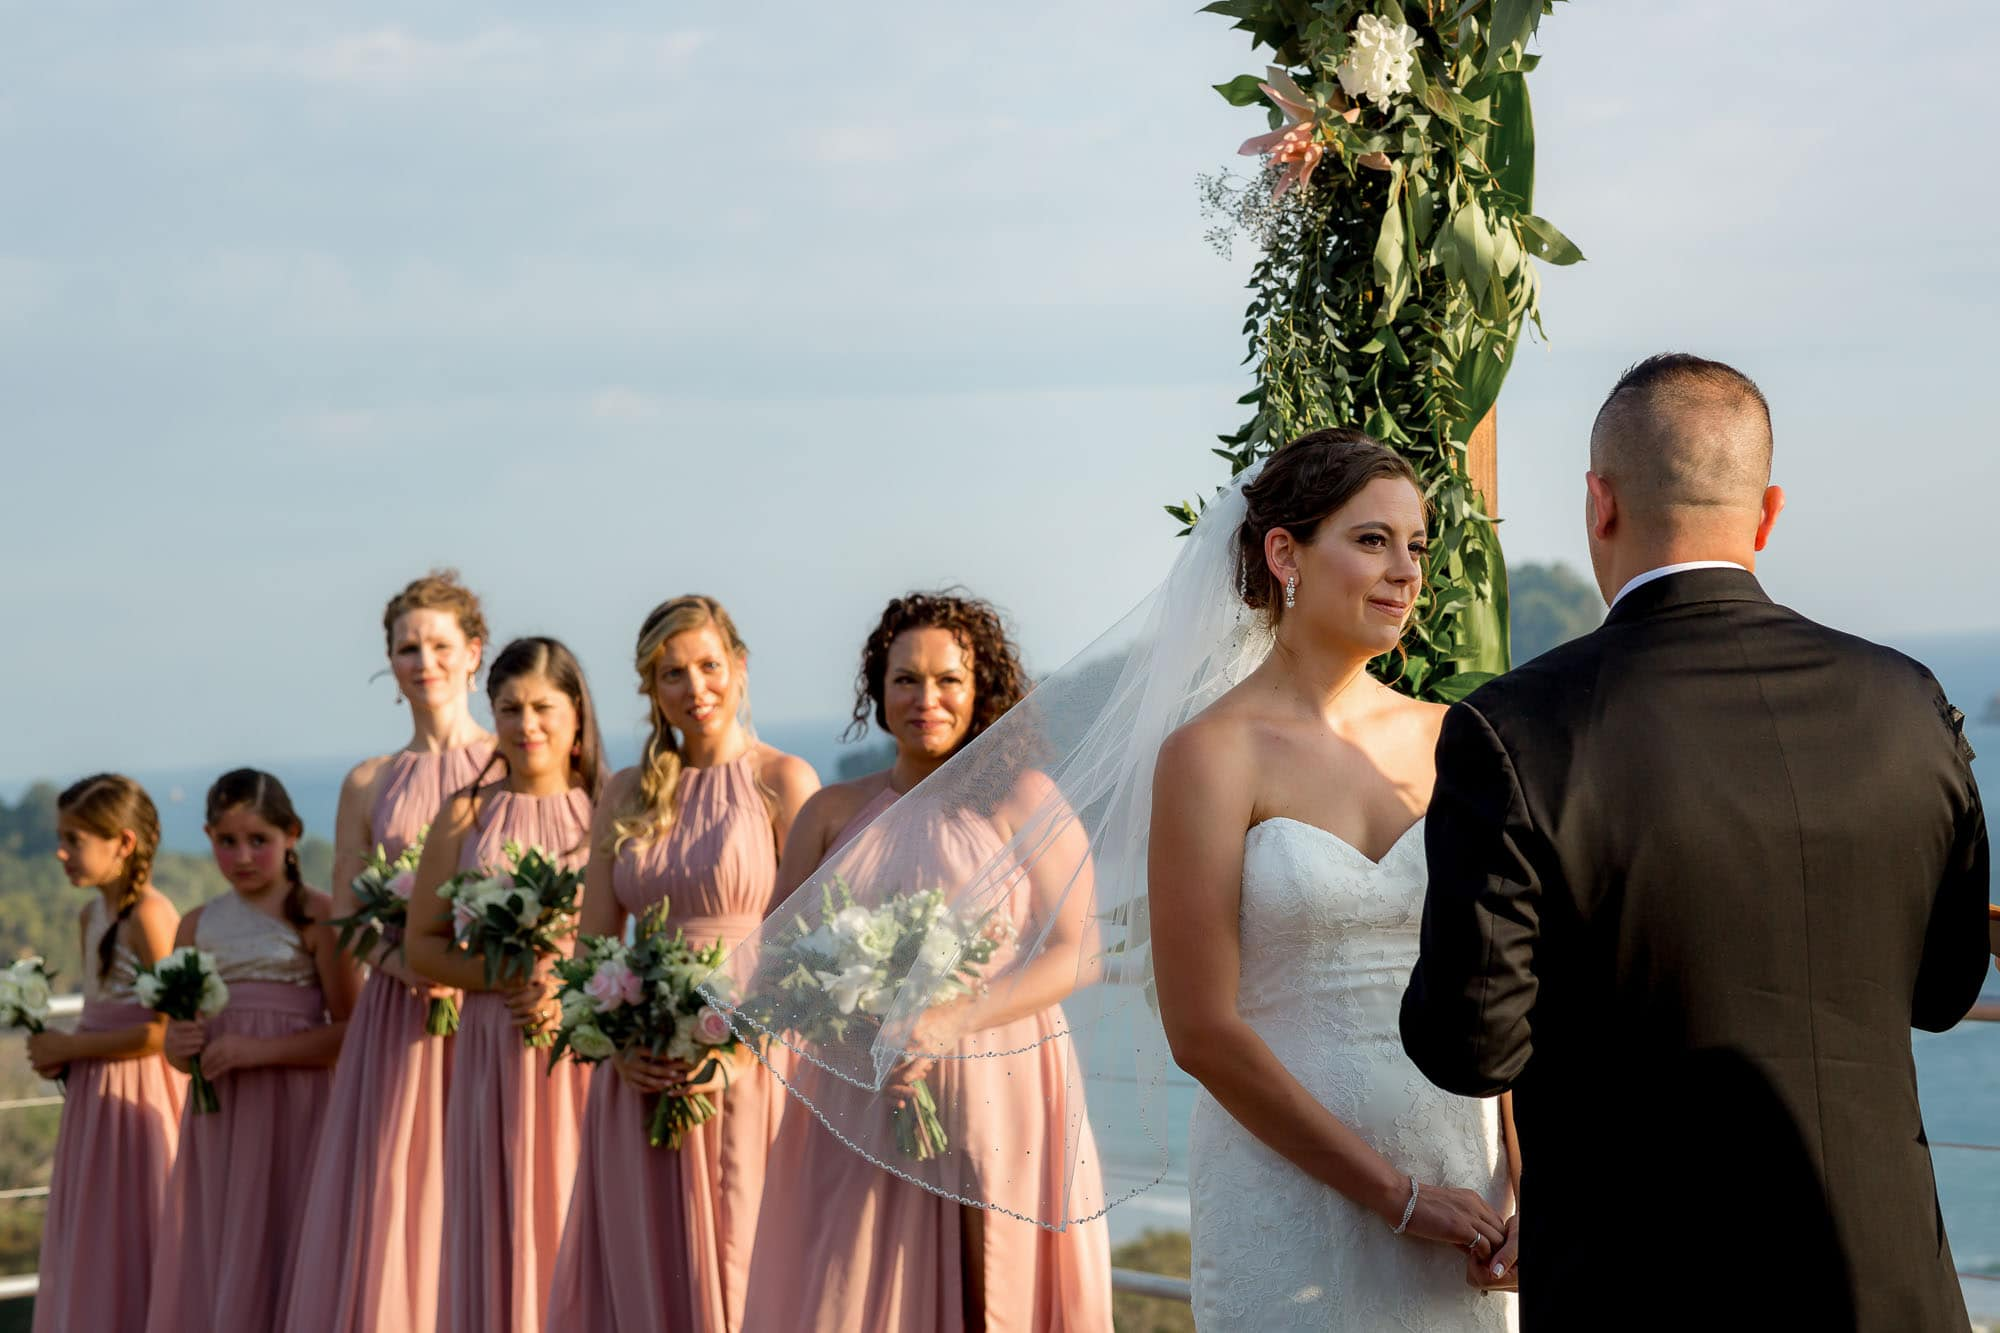 The bride and groom with the bridesmaids and the epic view